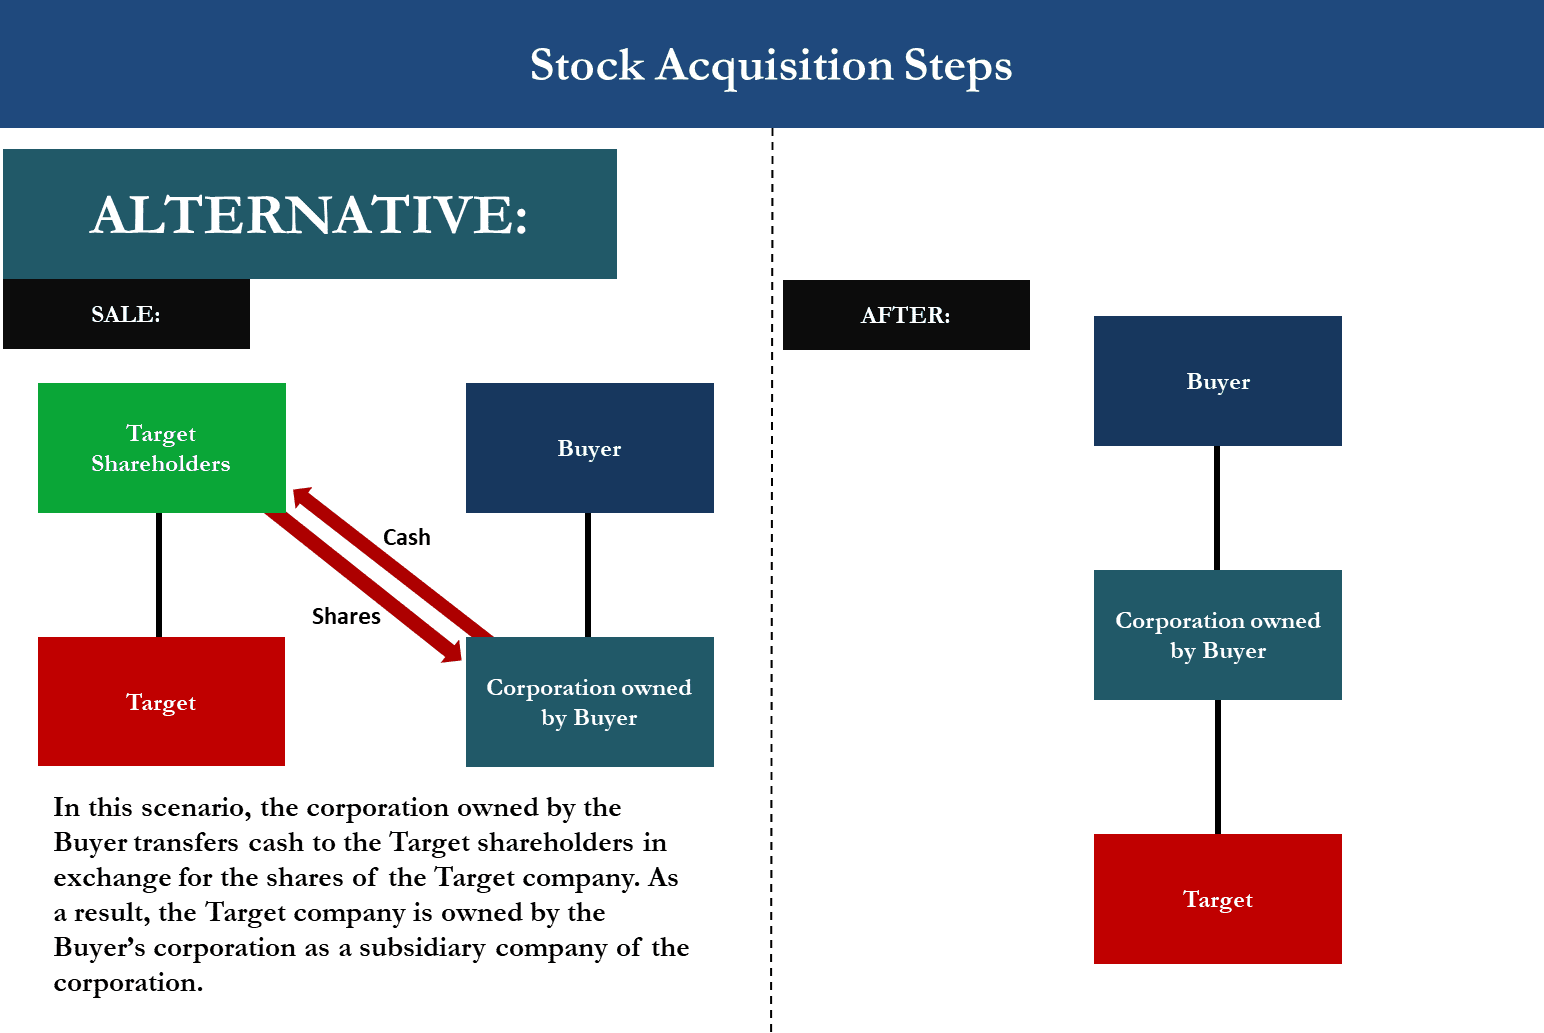 M&A Stock Acquisition Diagram showing Alternative Model